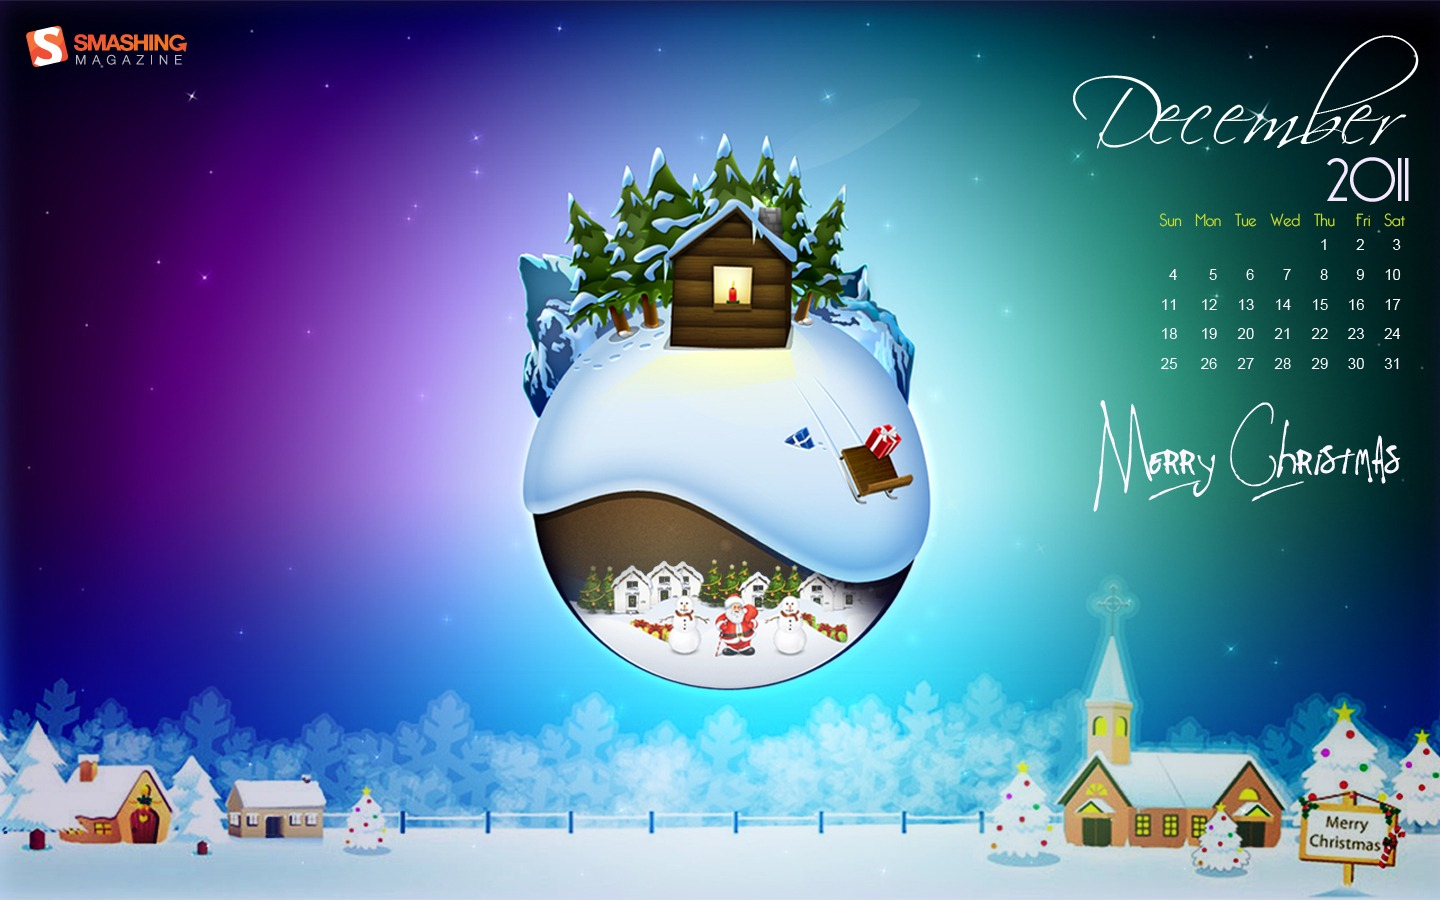 In January Calendar Wallpaper 31250